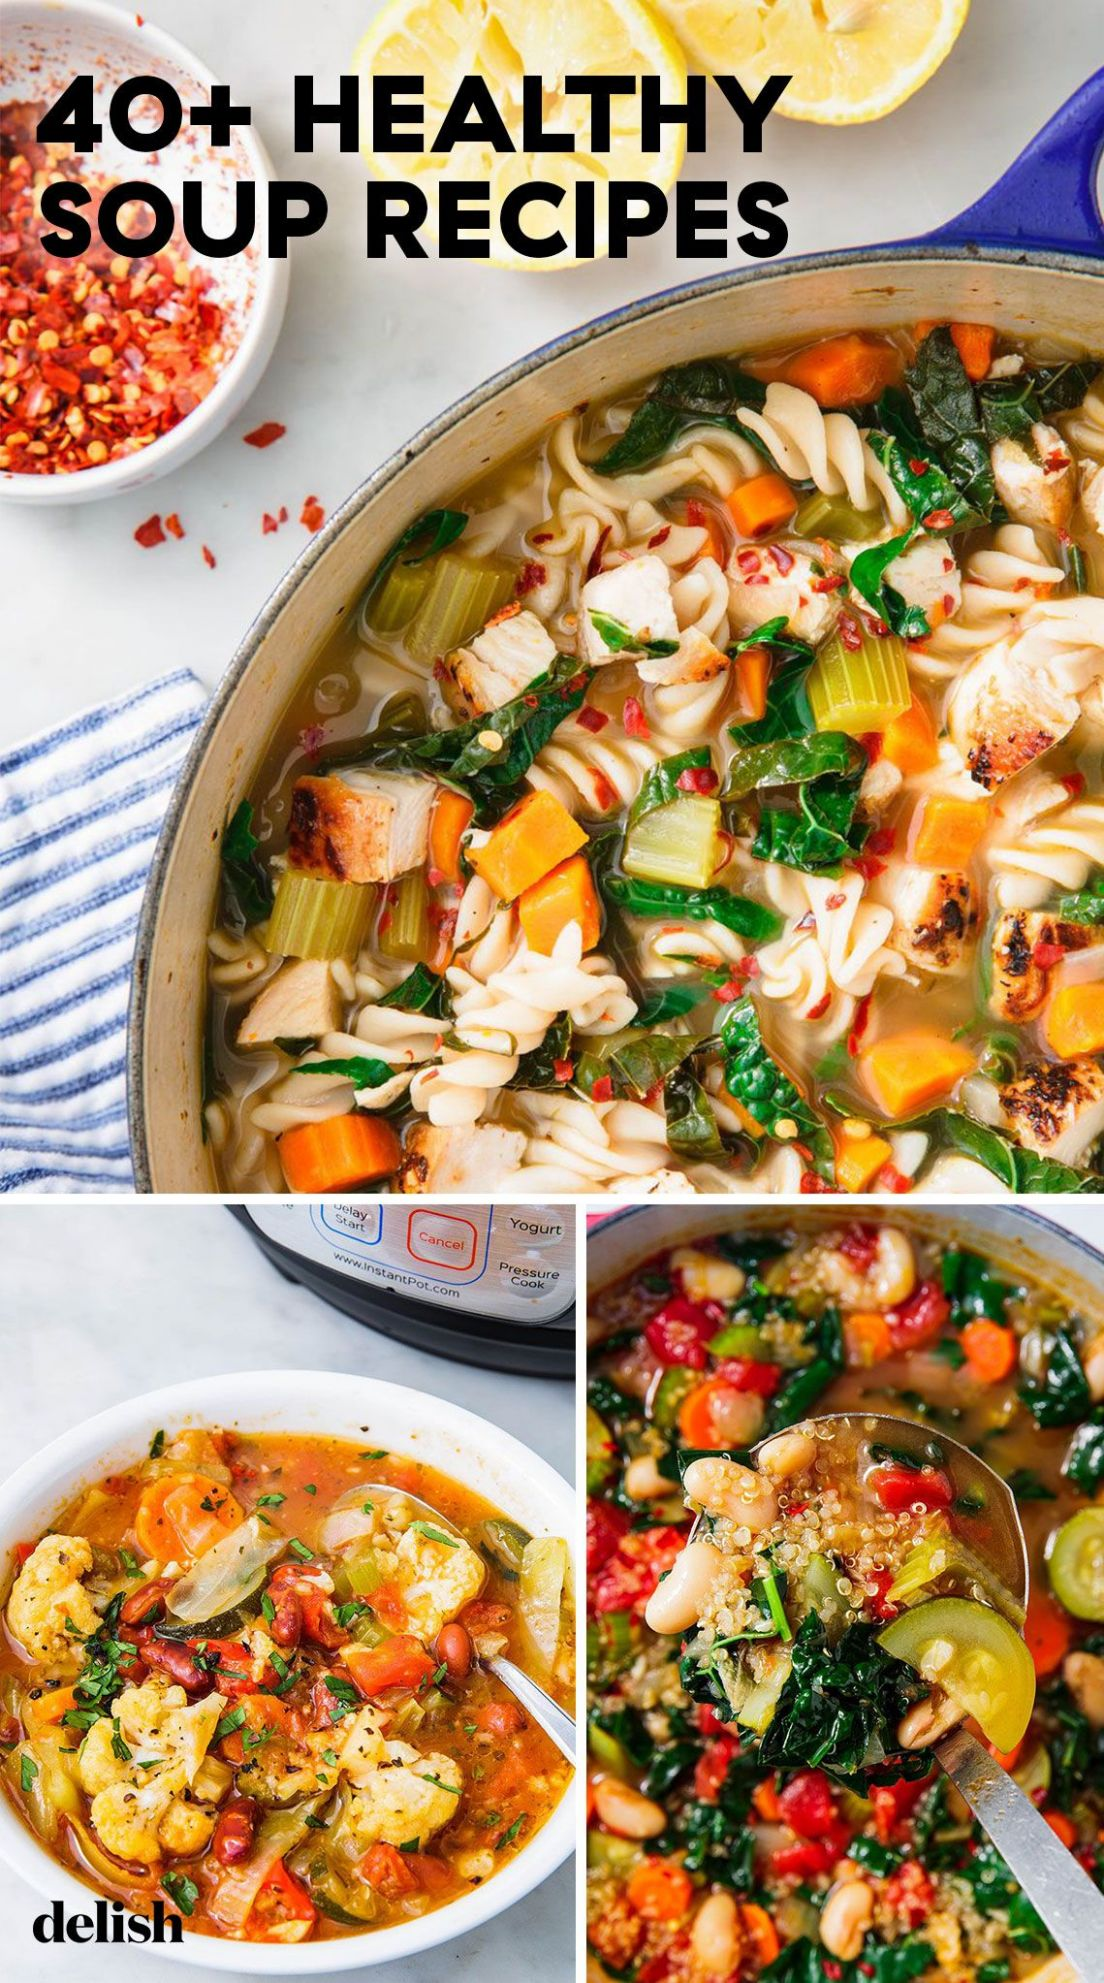 11+ Best Healthy Soup Recipes - Easy Ideas for Healthier Soups - Soup Recipes Easy Healthy